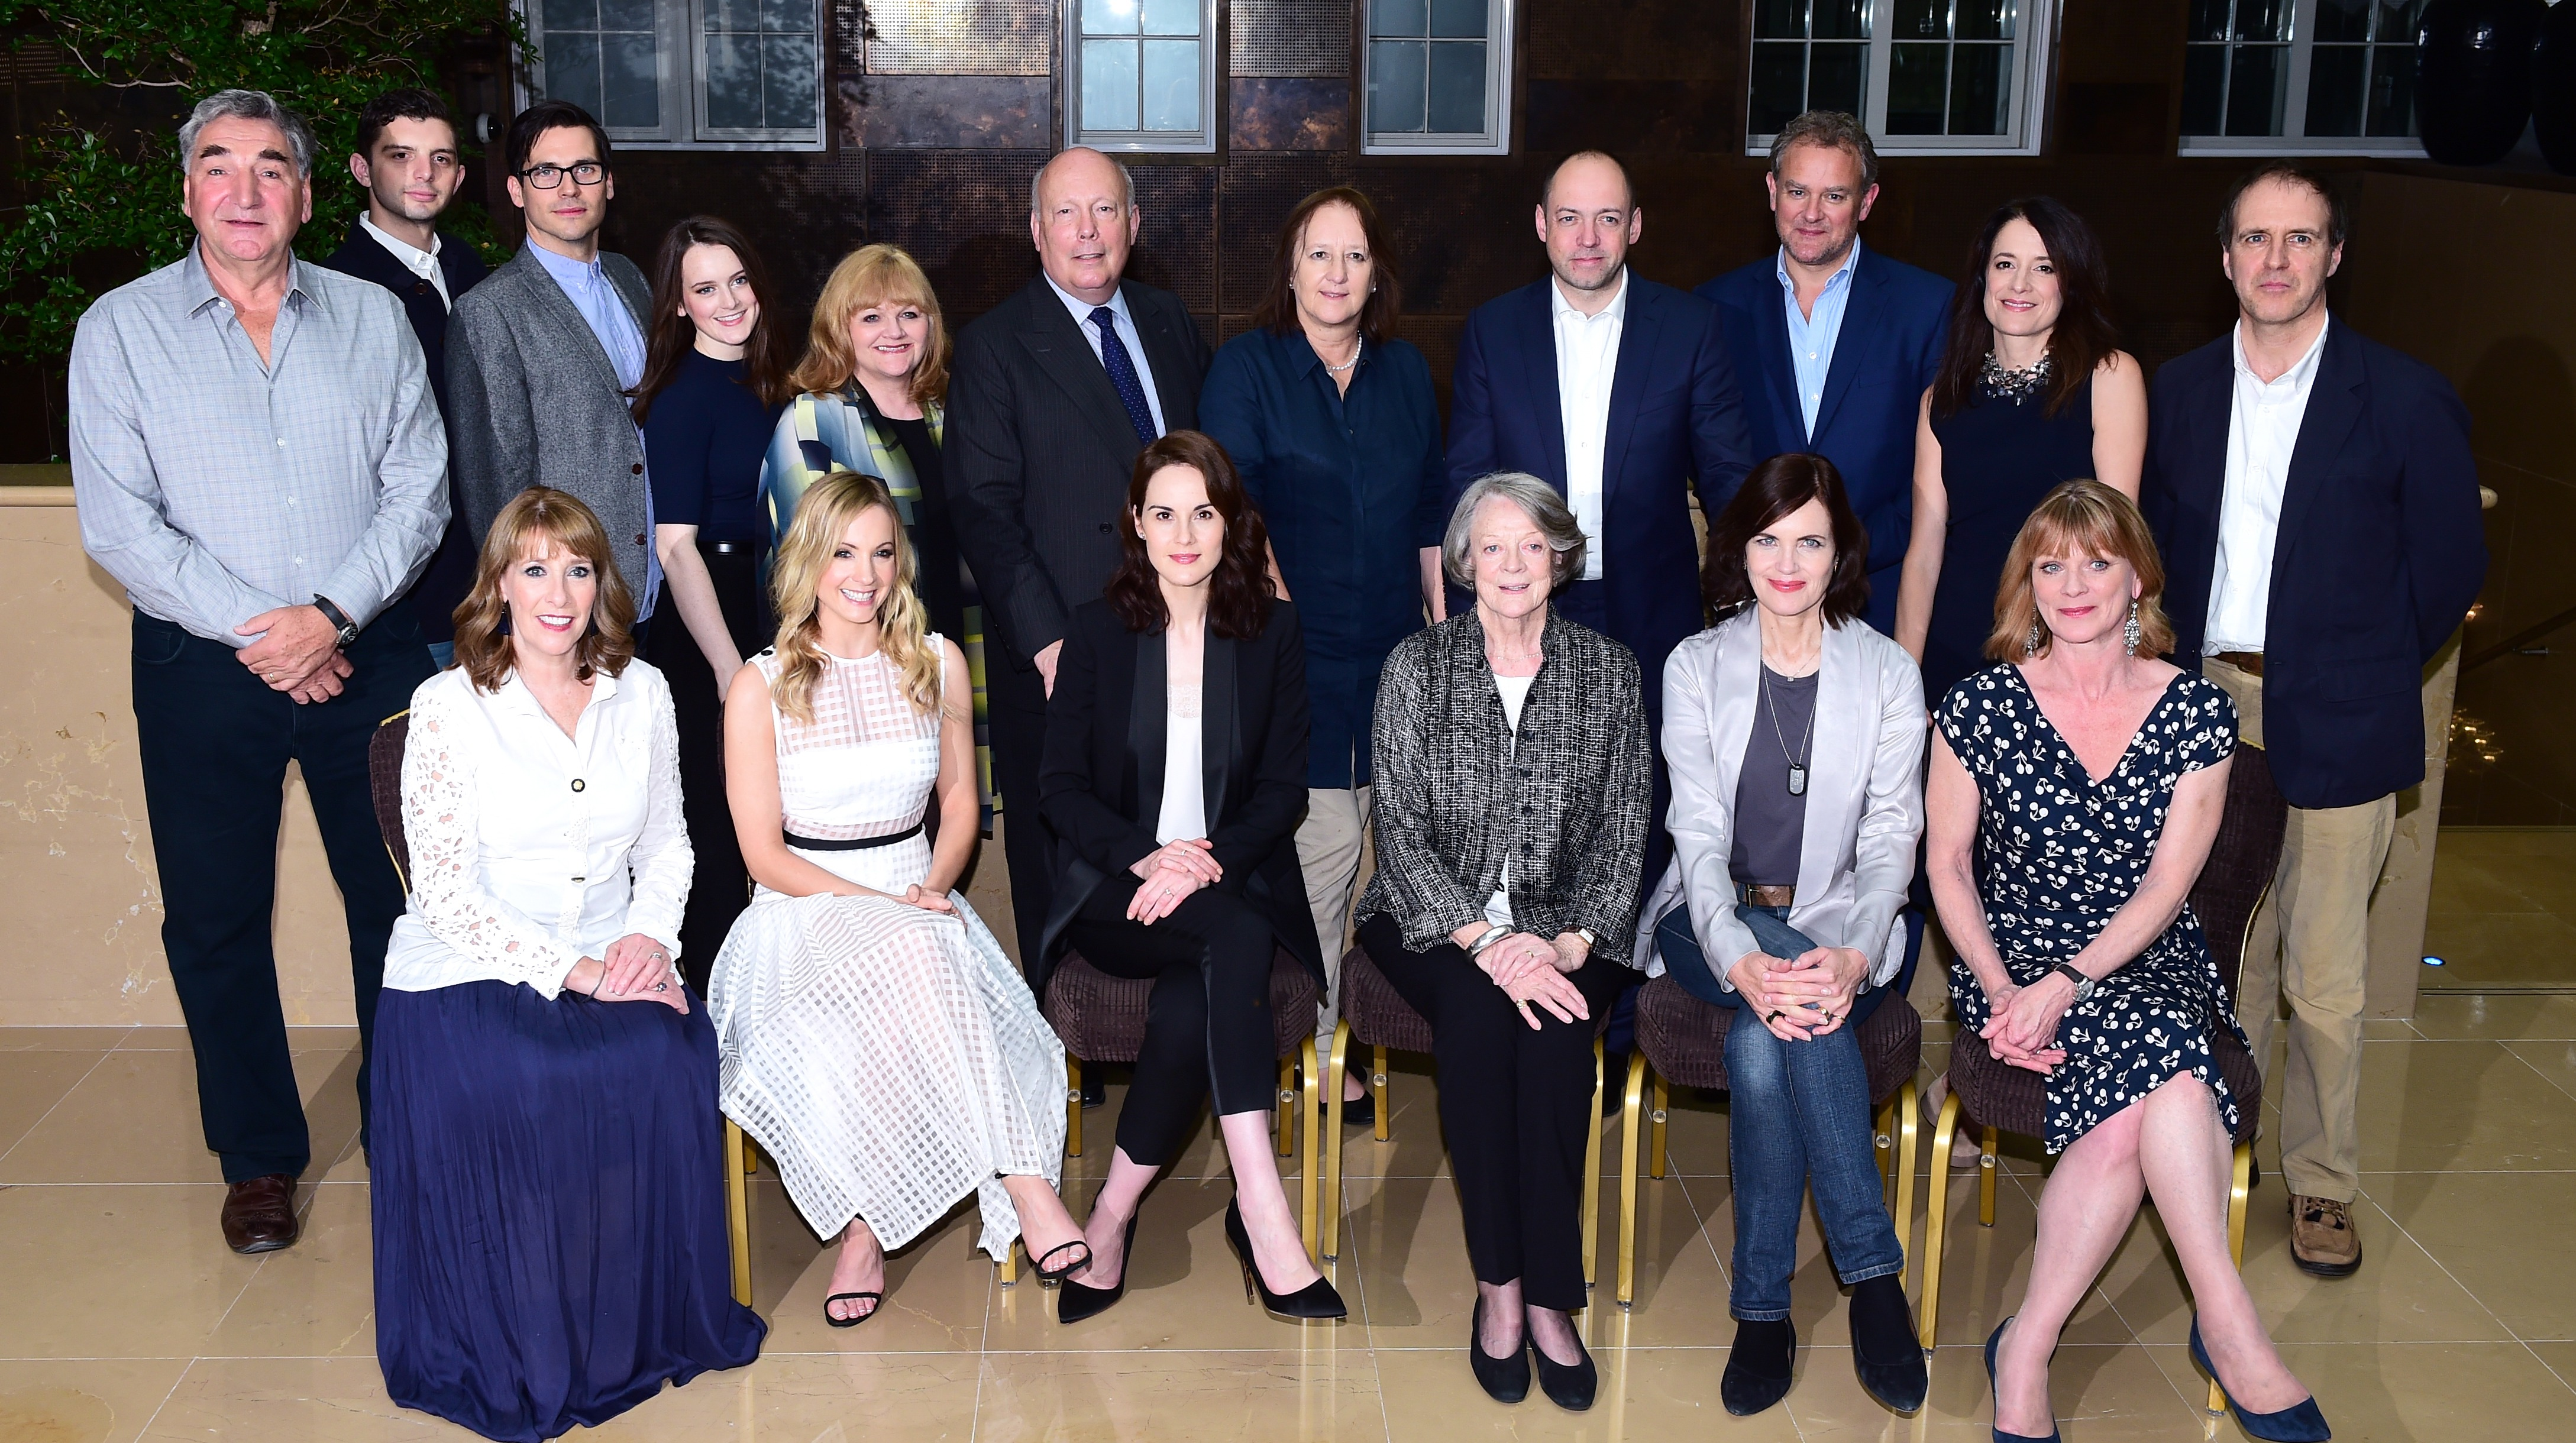 Emotional day for cast as Downton Abbey finishes filming ...